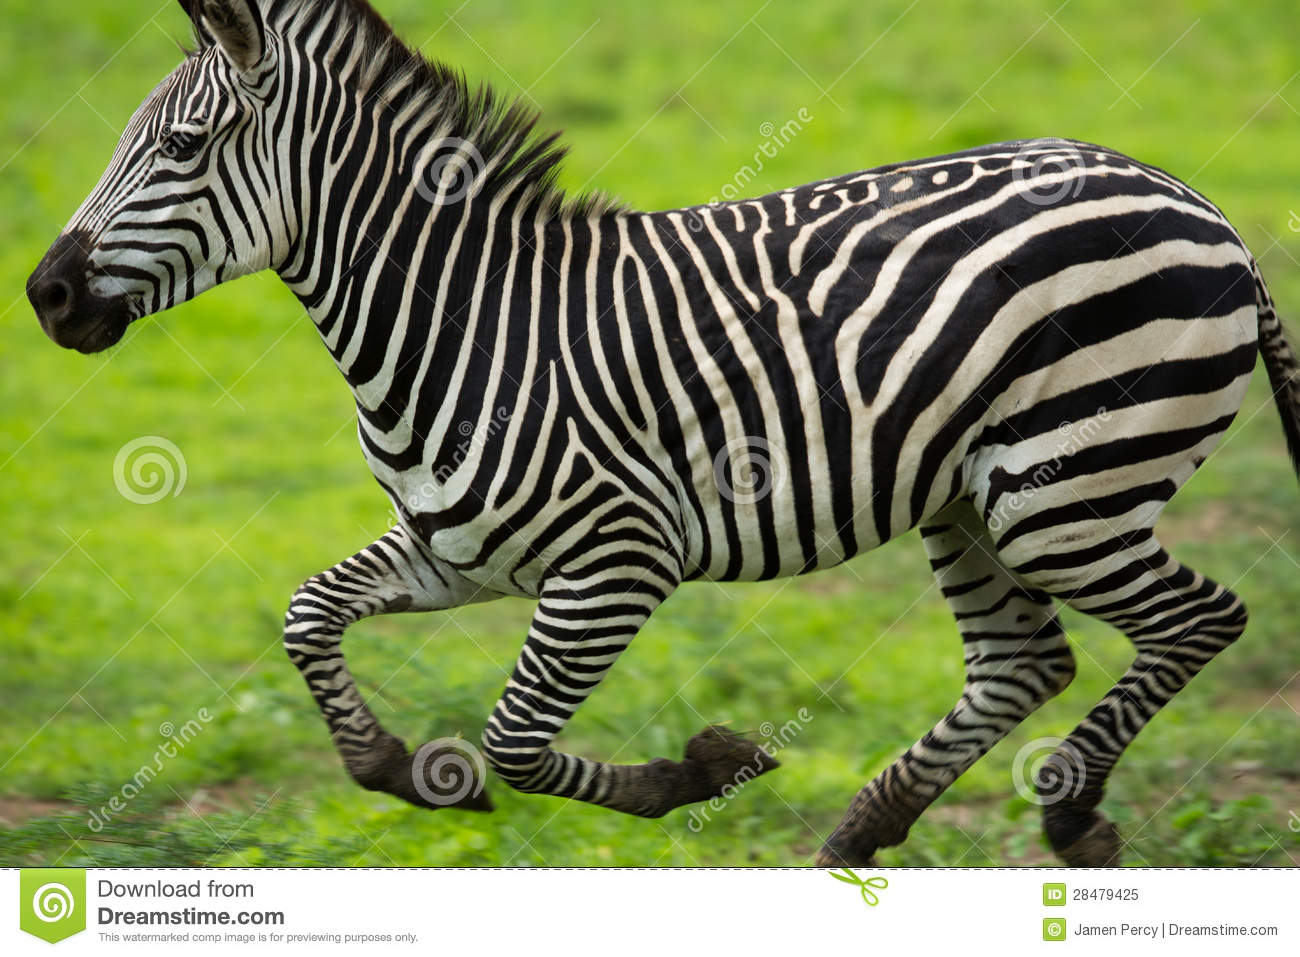 high resolution map of the united states with Royalty Free Stock Photo Zebra Running Image28479425 on Who Owns Who also Stock Photo Full Length Portrait Happy Business Woman Dancing High Resolution Photo Image32810890 additionally Royalty Free Stock Image People Work Construction Sign Image16507626 together with Stock Image Evil Man Image27318091 as well Stock Photos Futuristic Technology Background High Resolution Copy Illustration Image33984023.